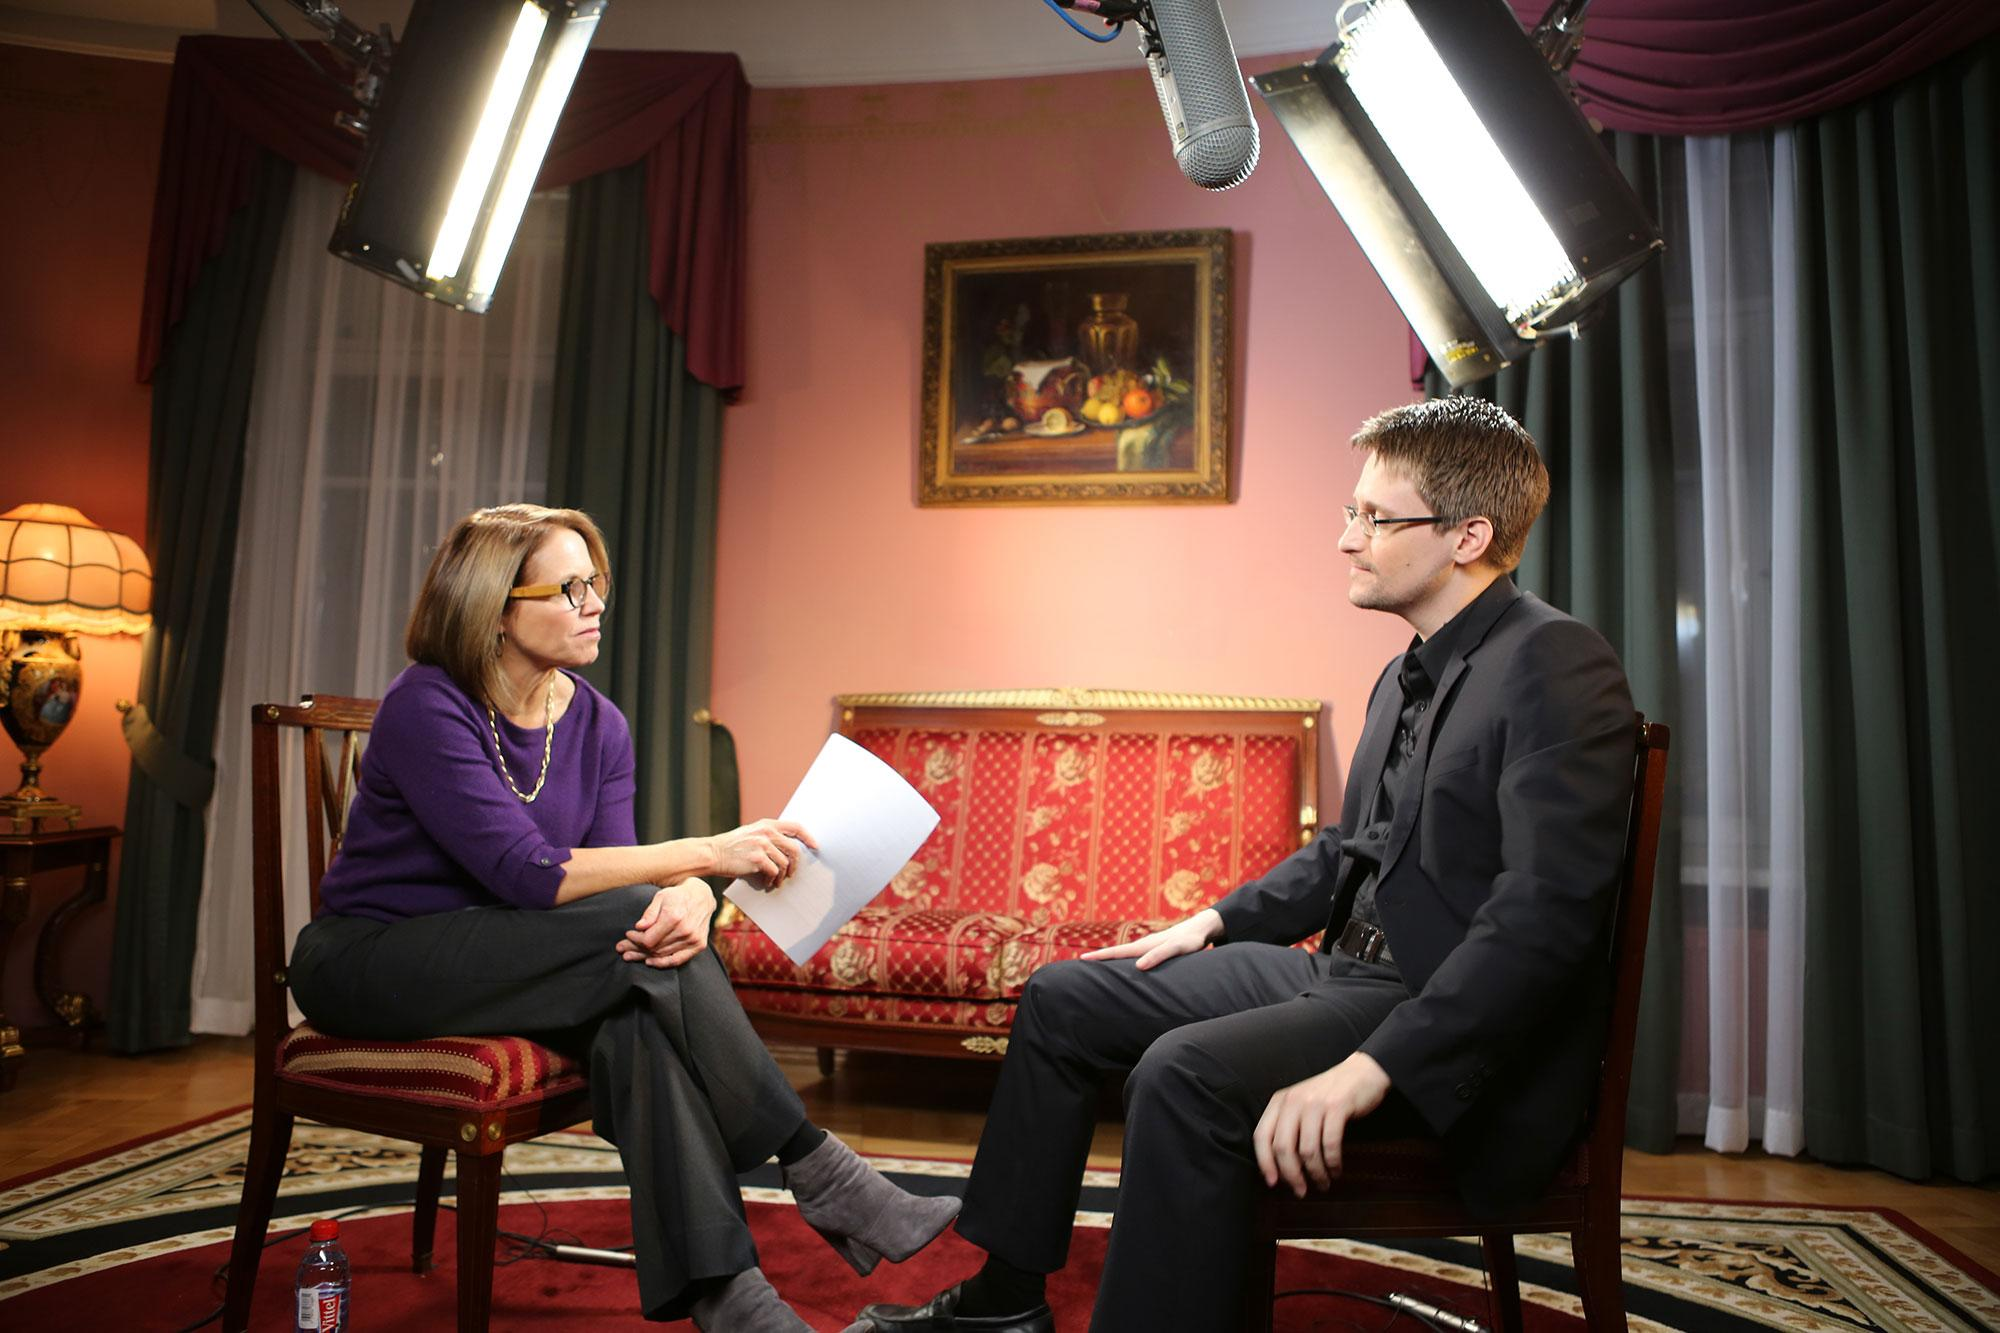 <p>Yahoo Global News Anchor Katie Couric interviews Edward Snowden in Moscow on December 3, 2016. (Photo: Brad Williams/Yahoo News) </p>